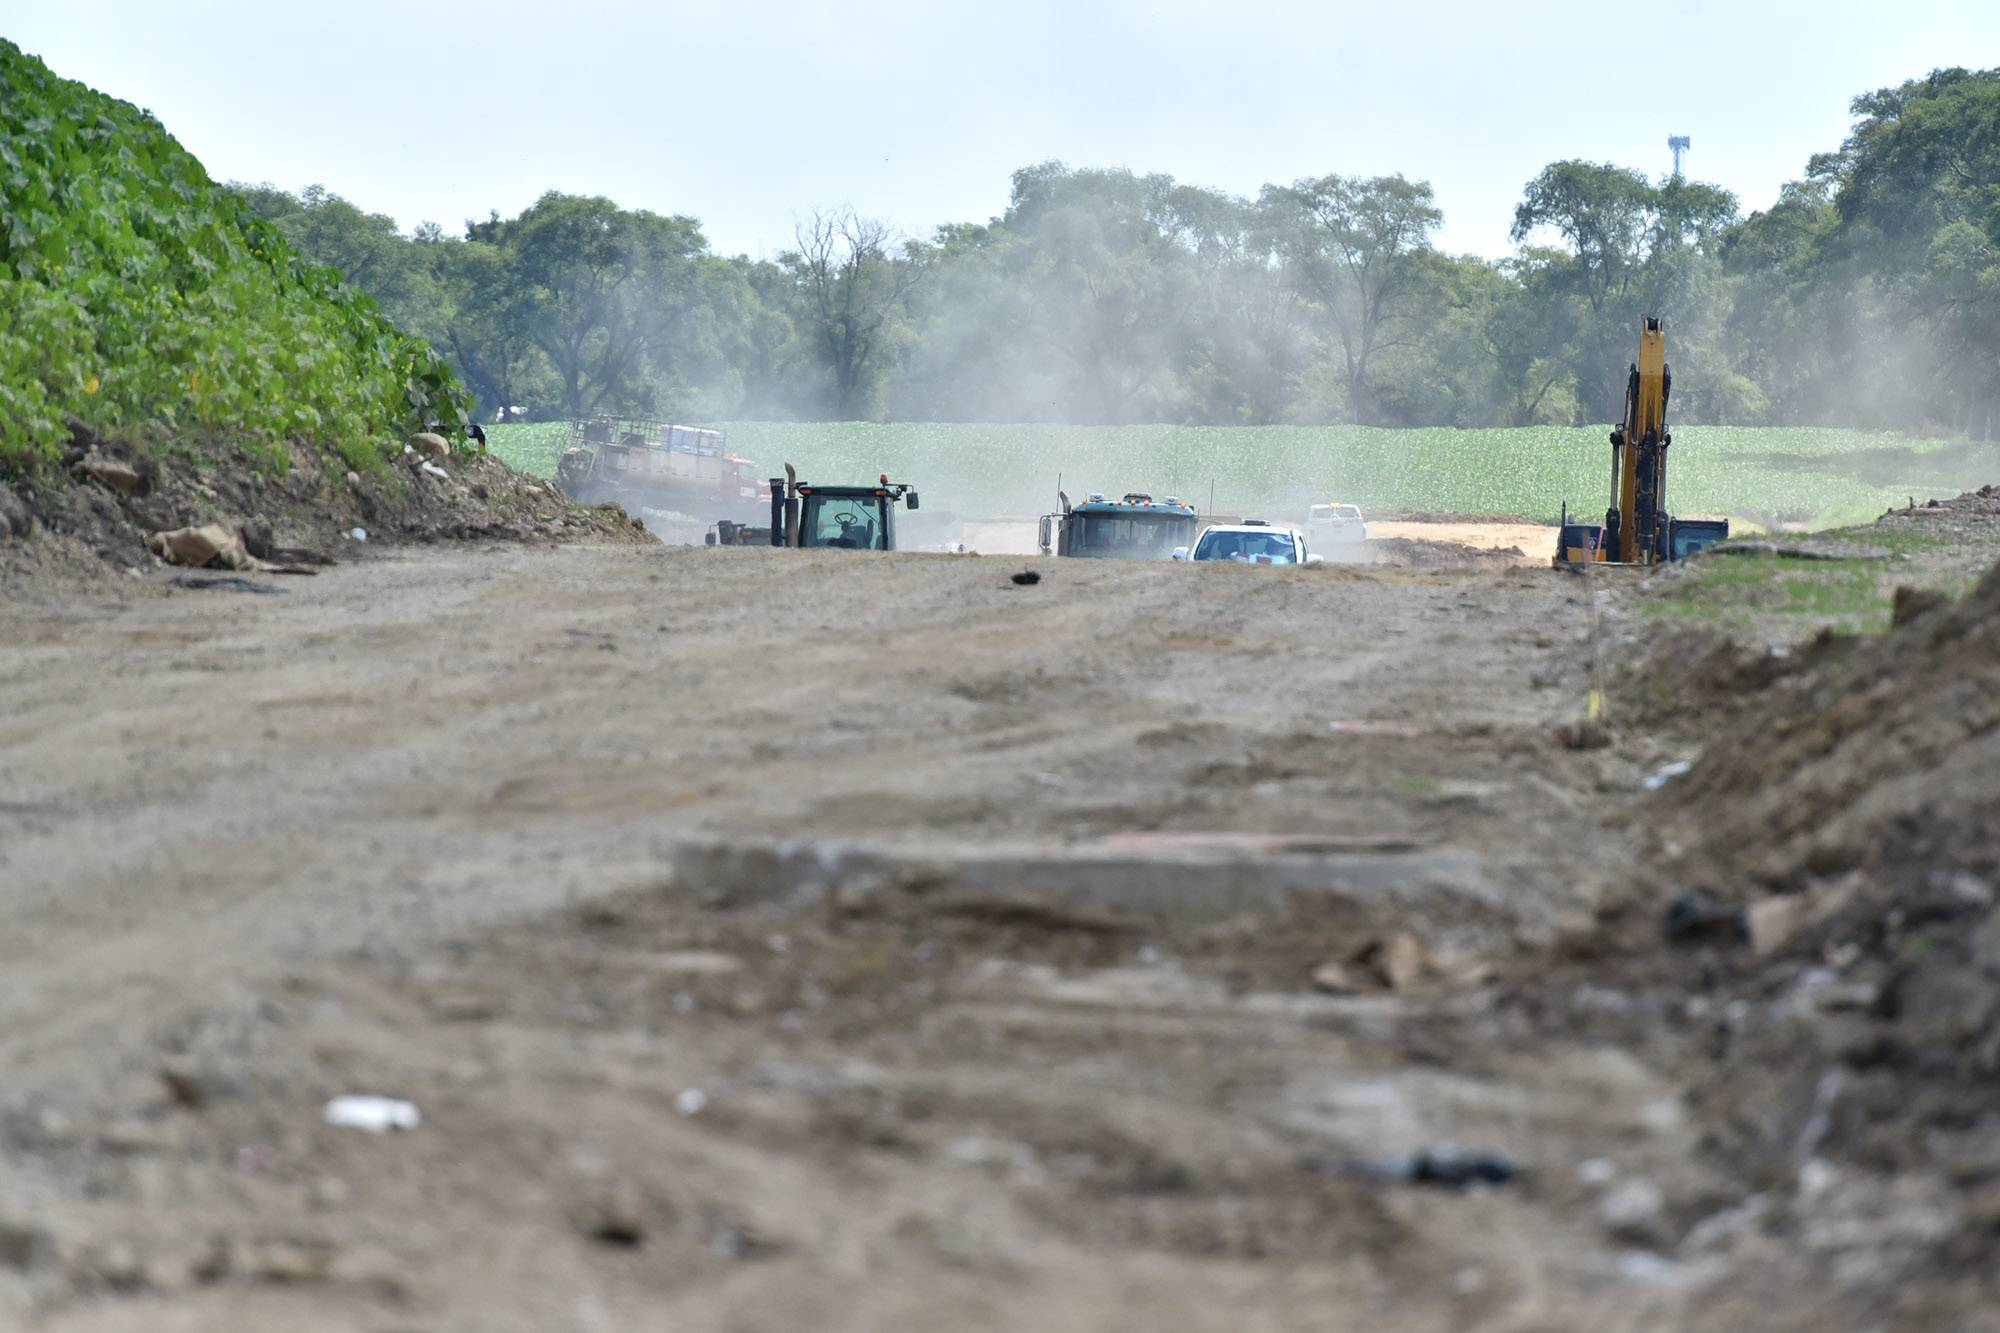 Construction crews extended their work hours on the Longmeadow Parkway project this month. But the largest and most expensive portions of the project, including the bridge over the Fox River, will come in 2018.